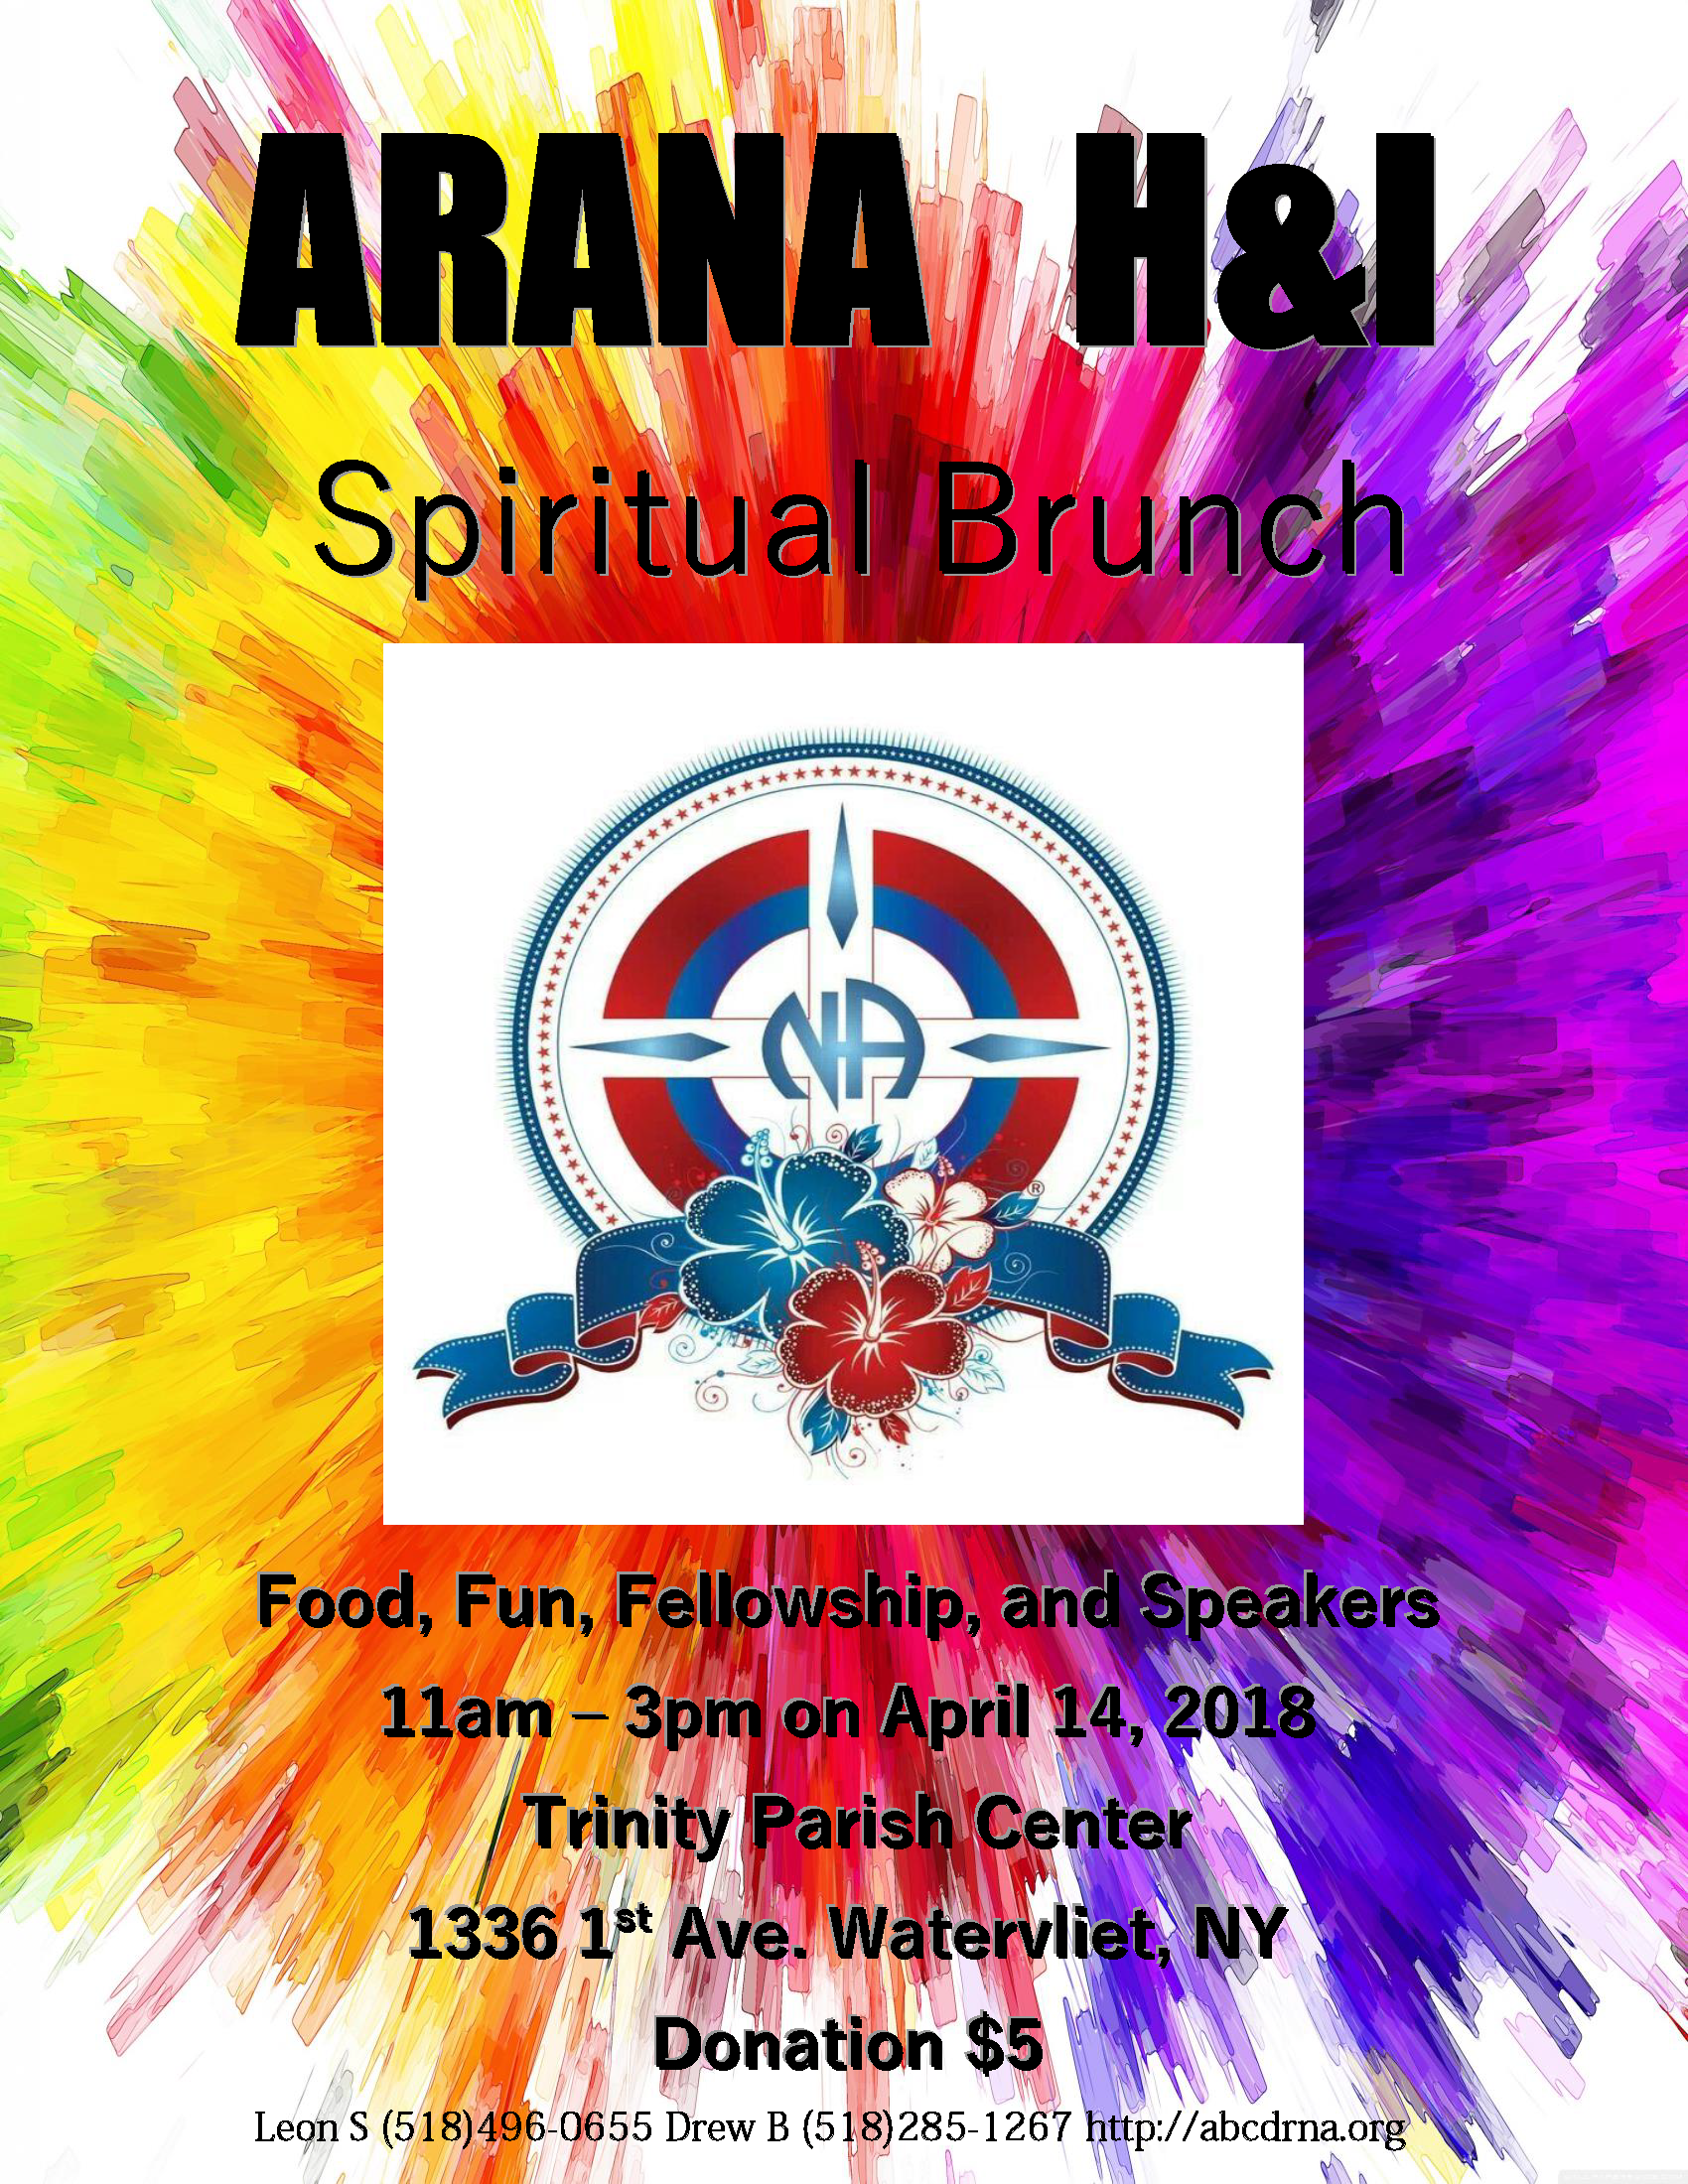 ARANA Hospitals and Institutions Spirituality Brunch @ Trinity Parish Center | Watervliet | New York | United States